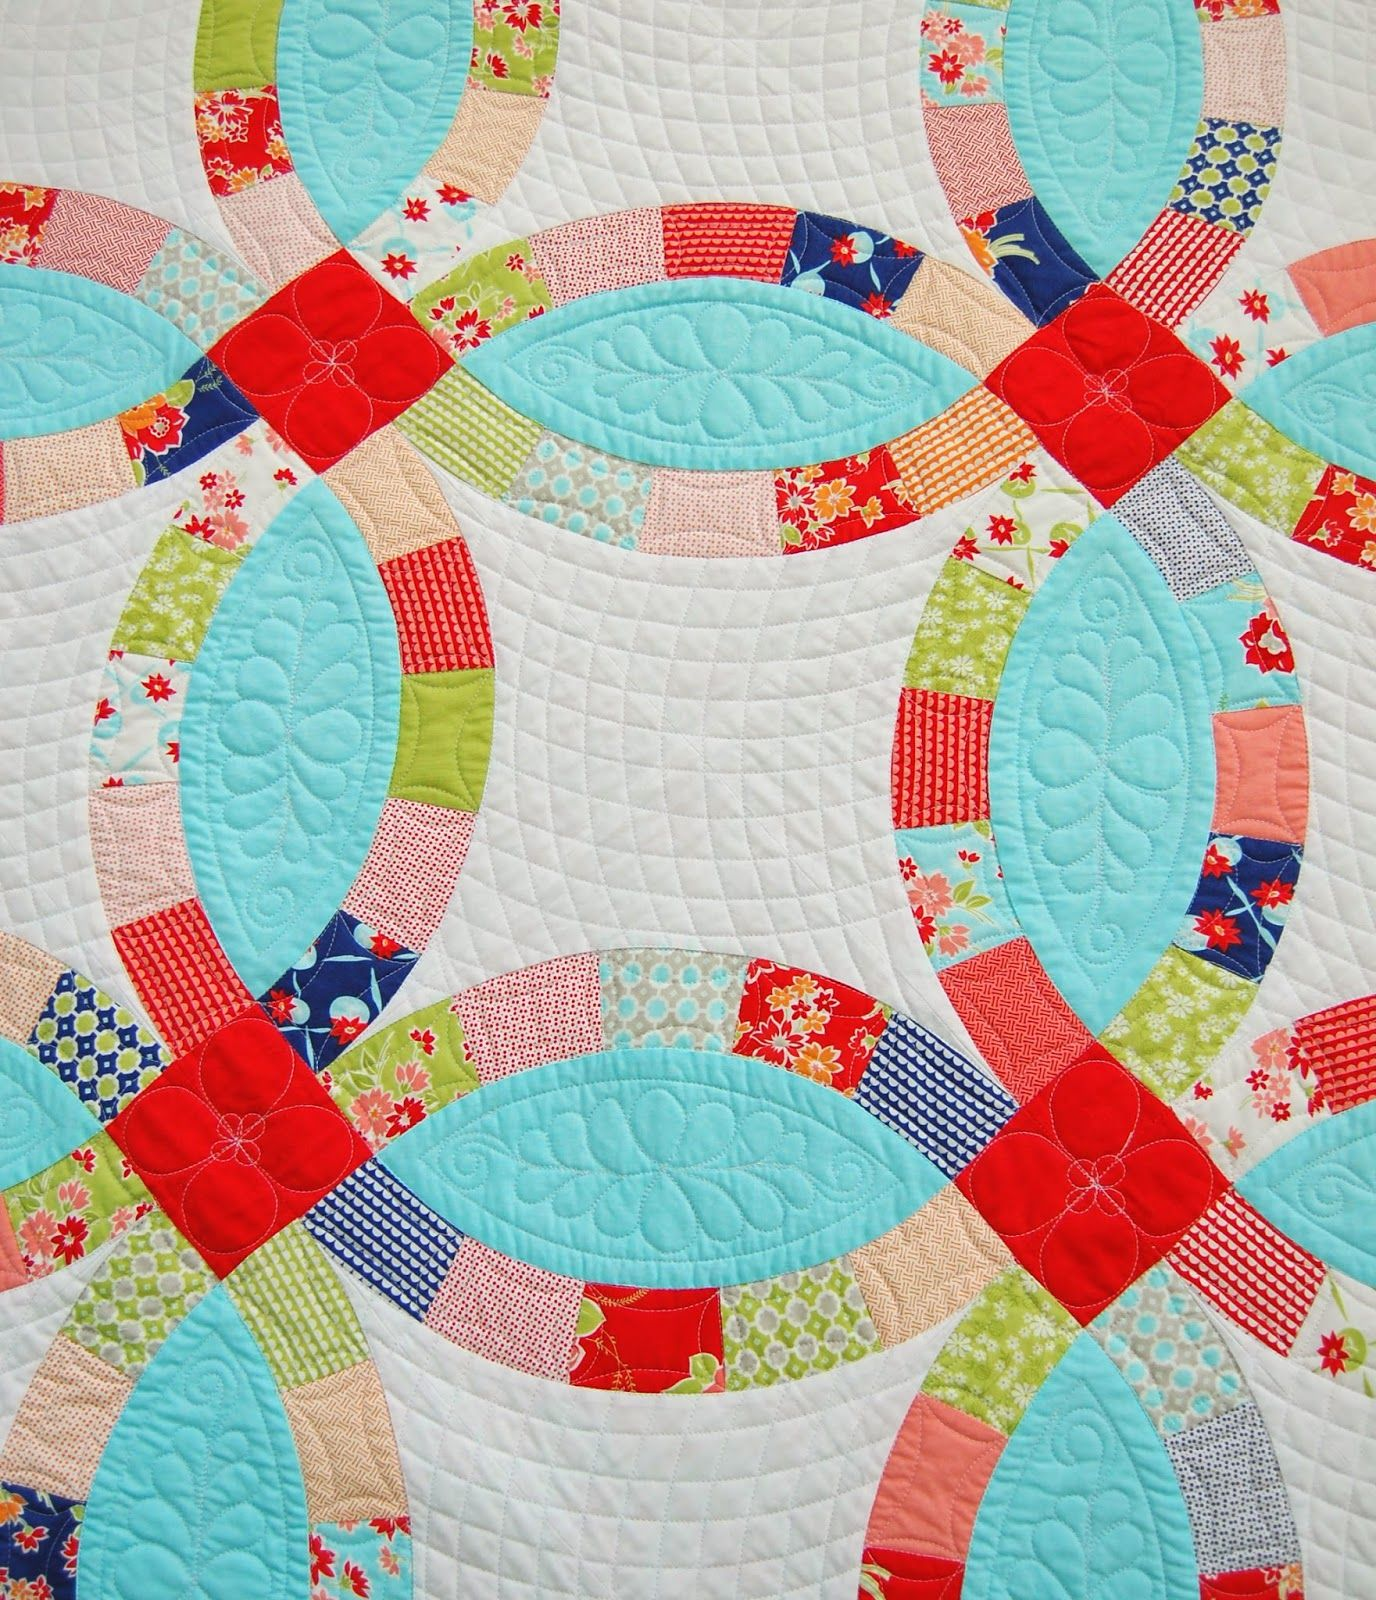 Kate's Big Day, Double Wedding Ring Quilt Pattern By